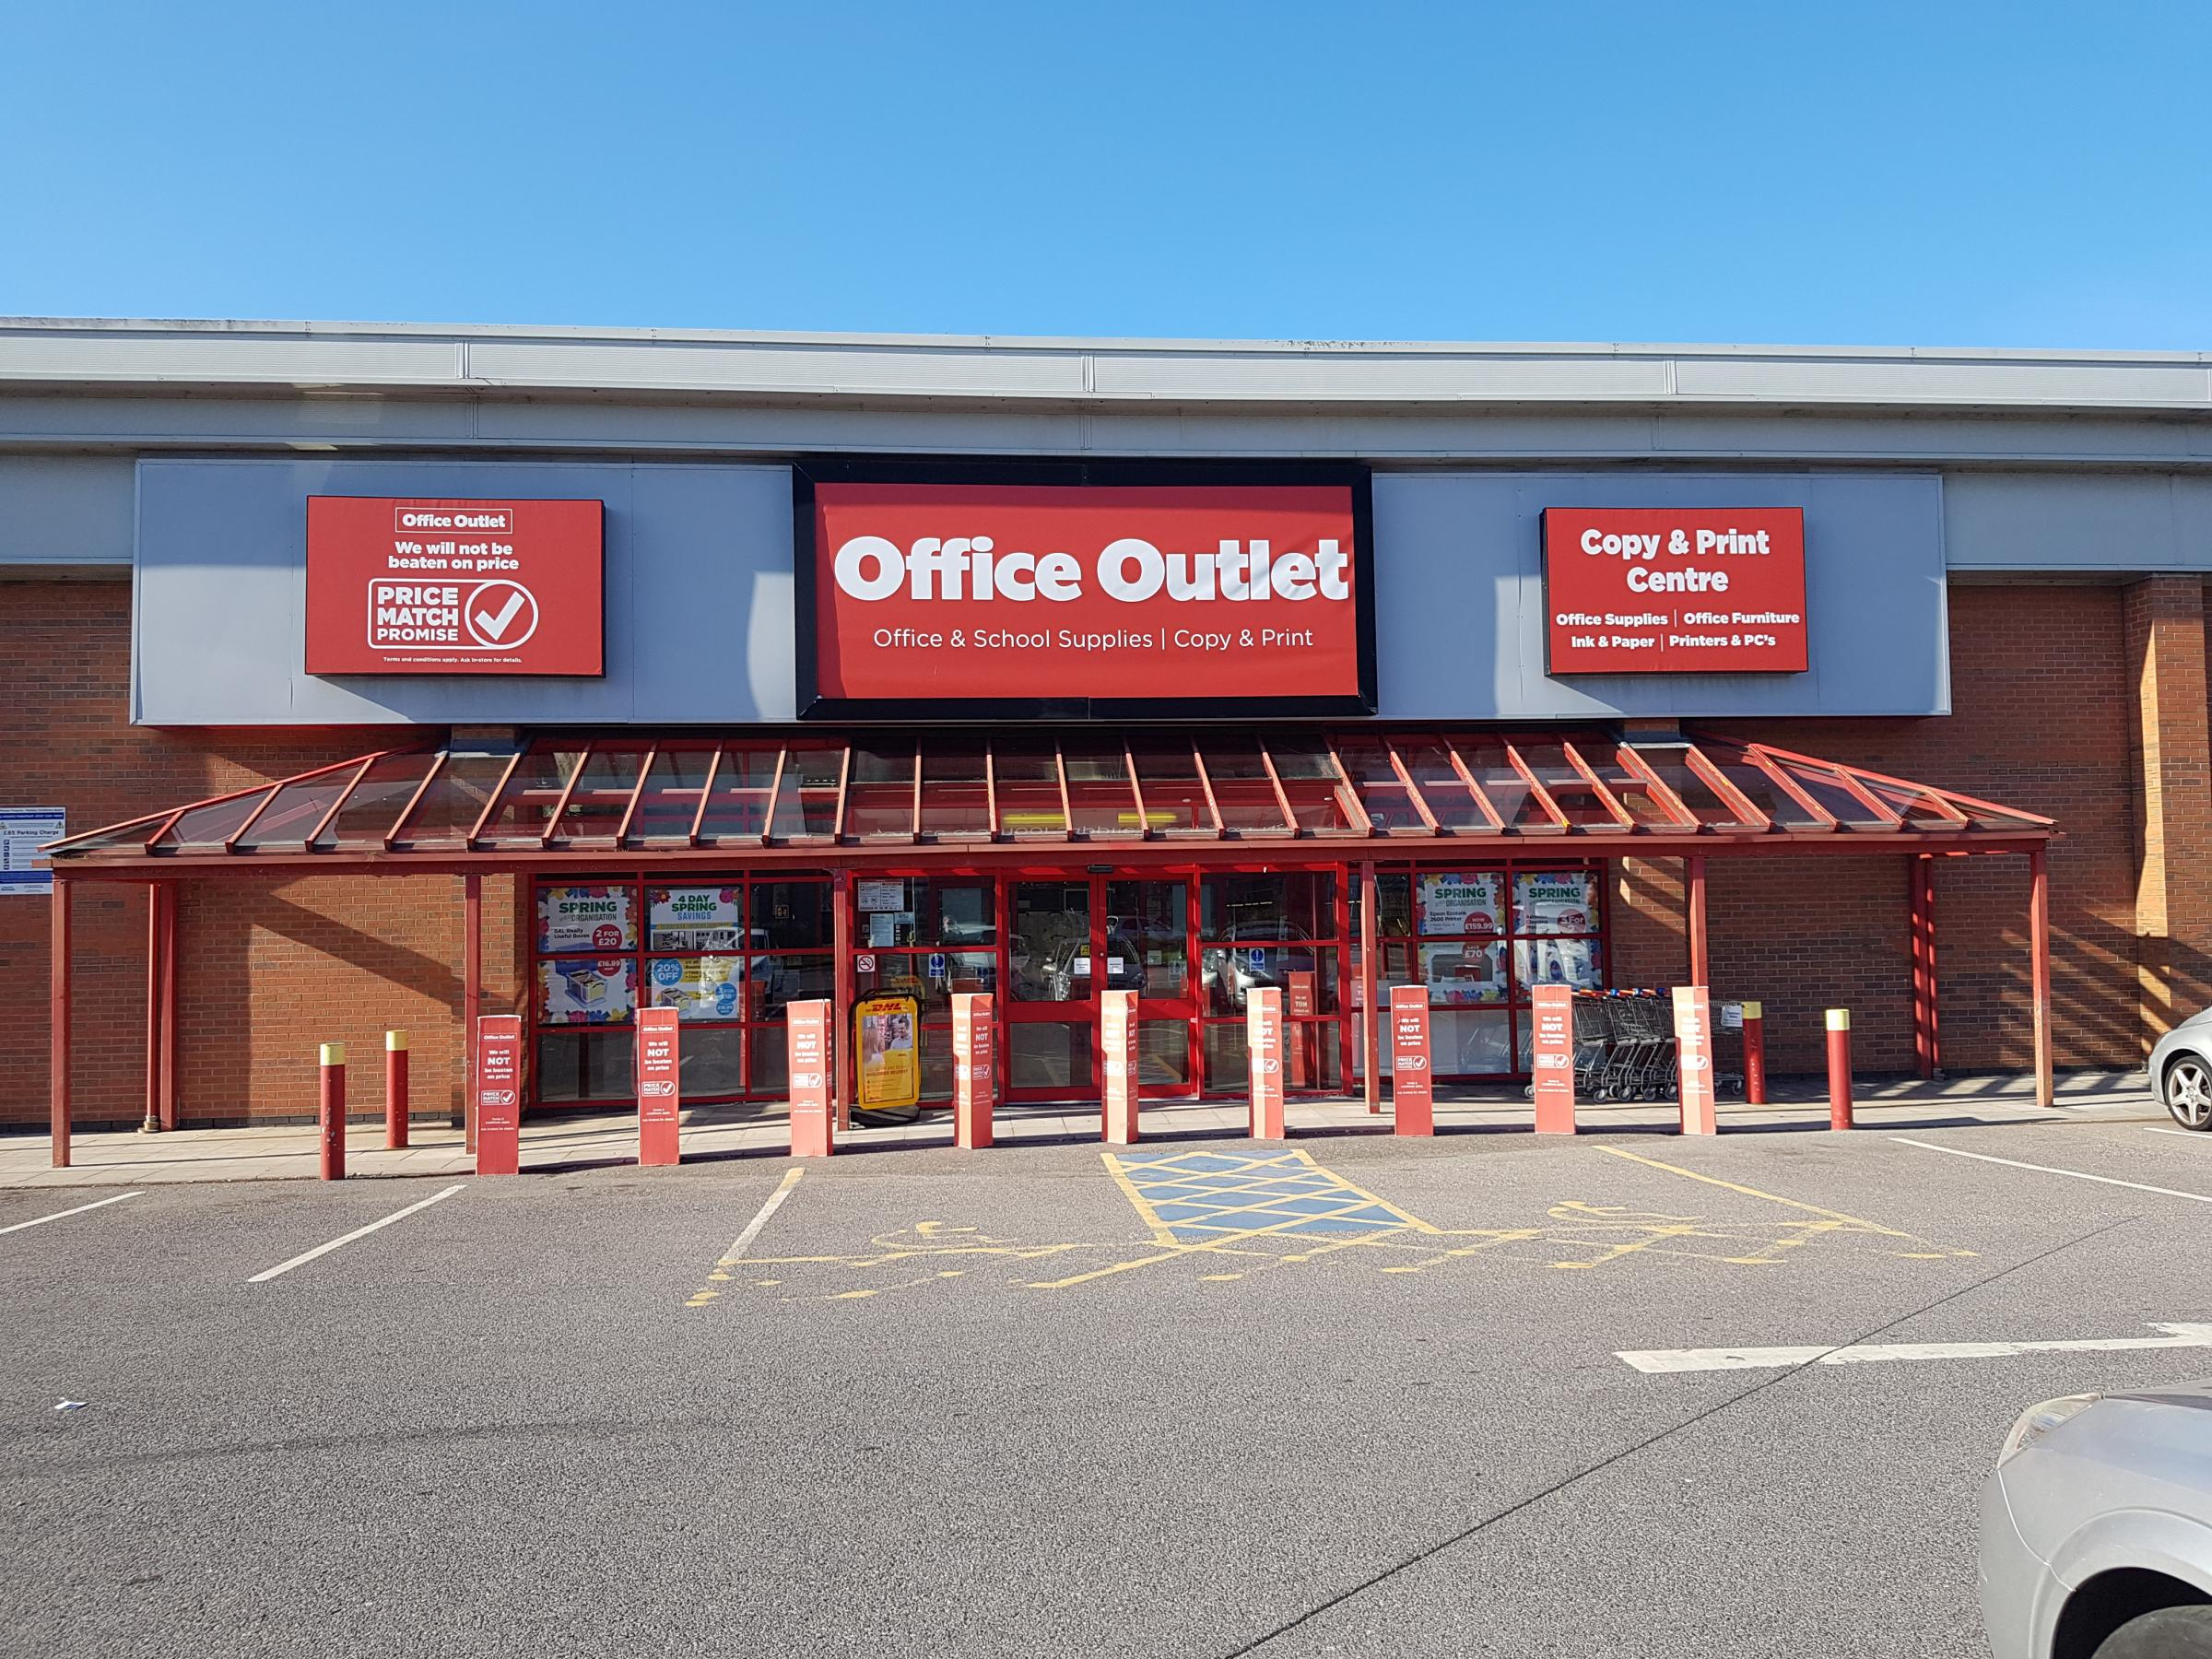 Office Outlet in Holdenhurst Road, Bournemouth